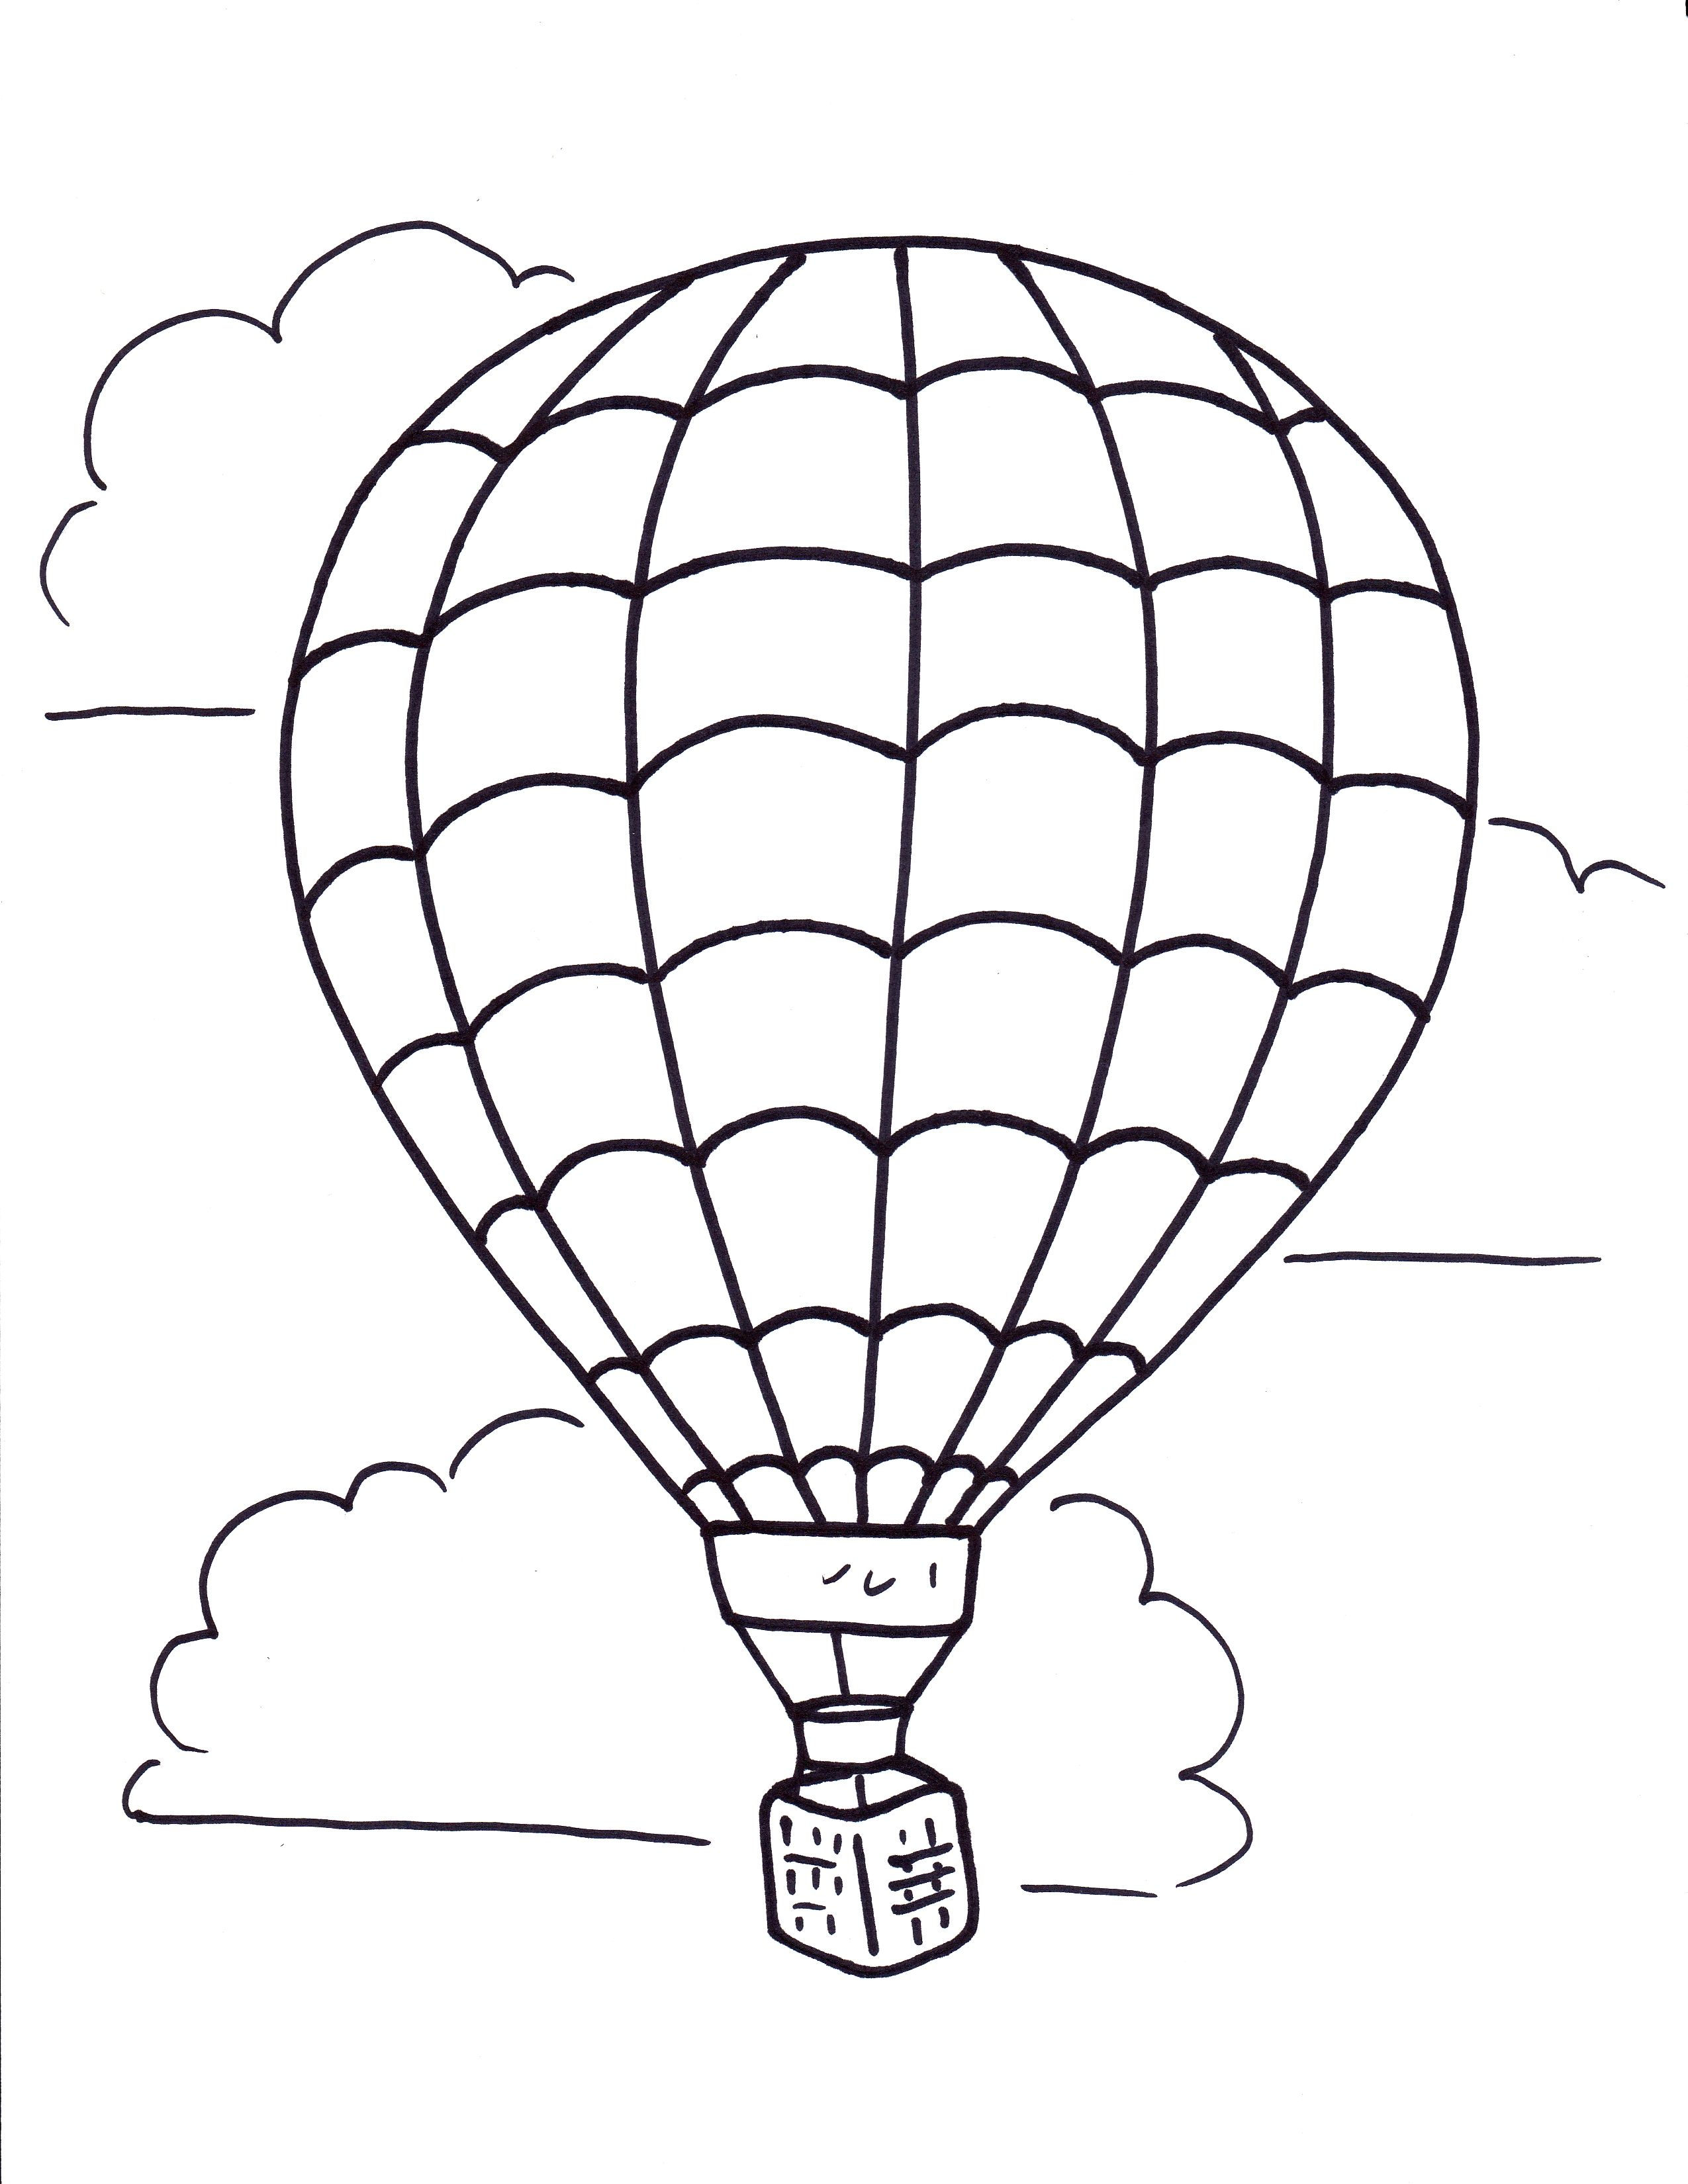 Related Hot Air Balloon Coloring Pages item-11522, Hot Air